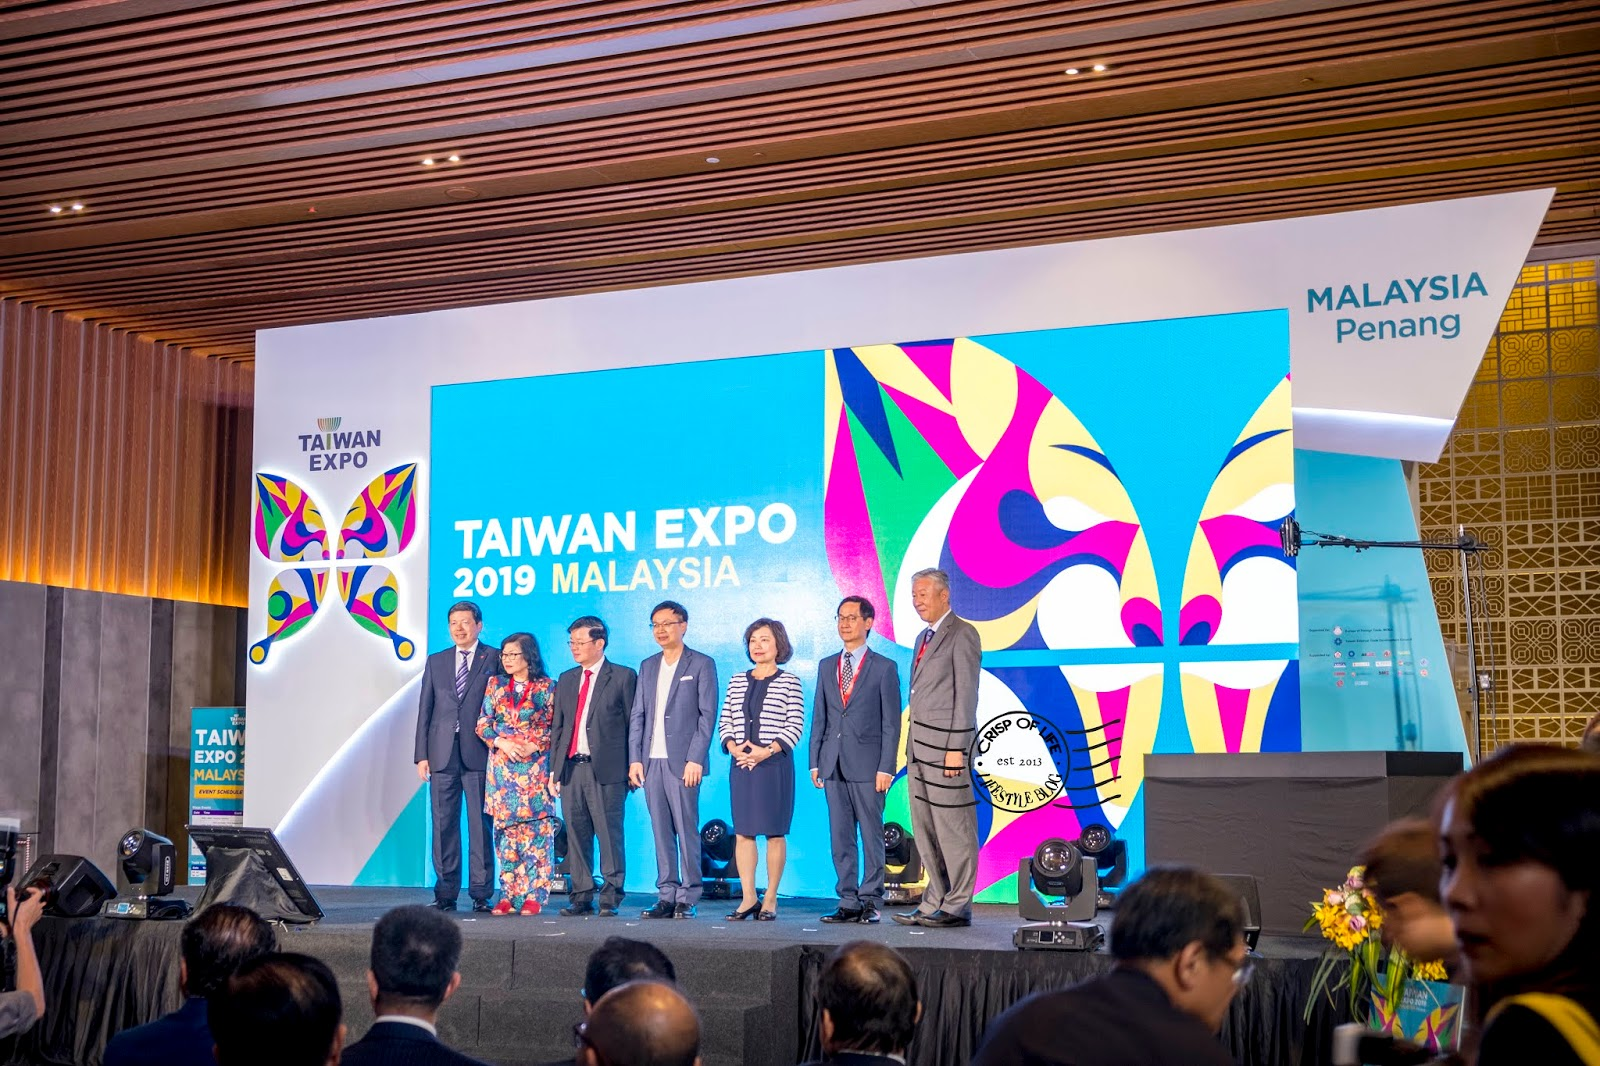 Taiwan Expo 2019 Taiwan Excellence Capture Industry 4.0 A Smart Factory Solutions